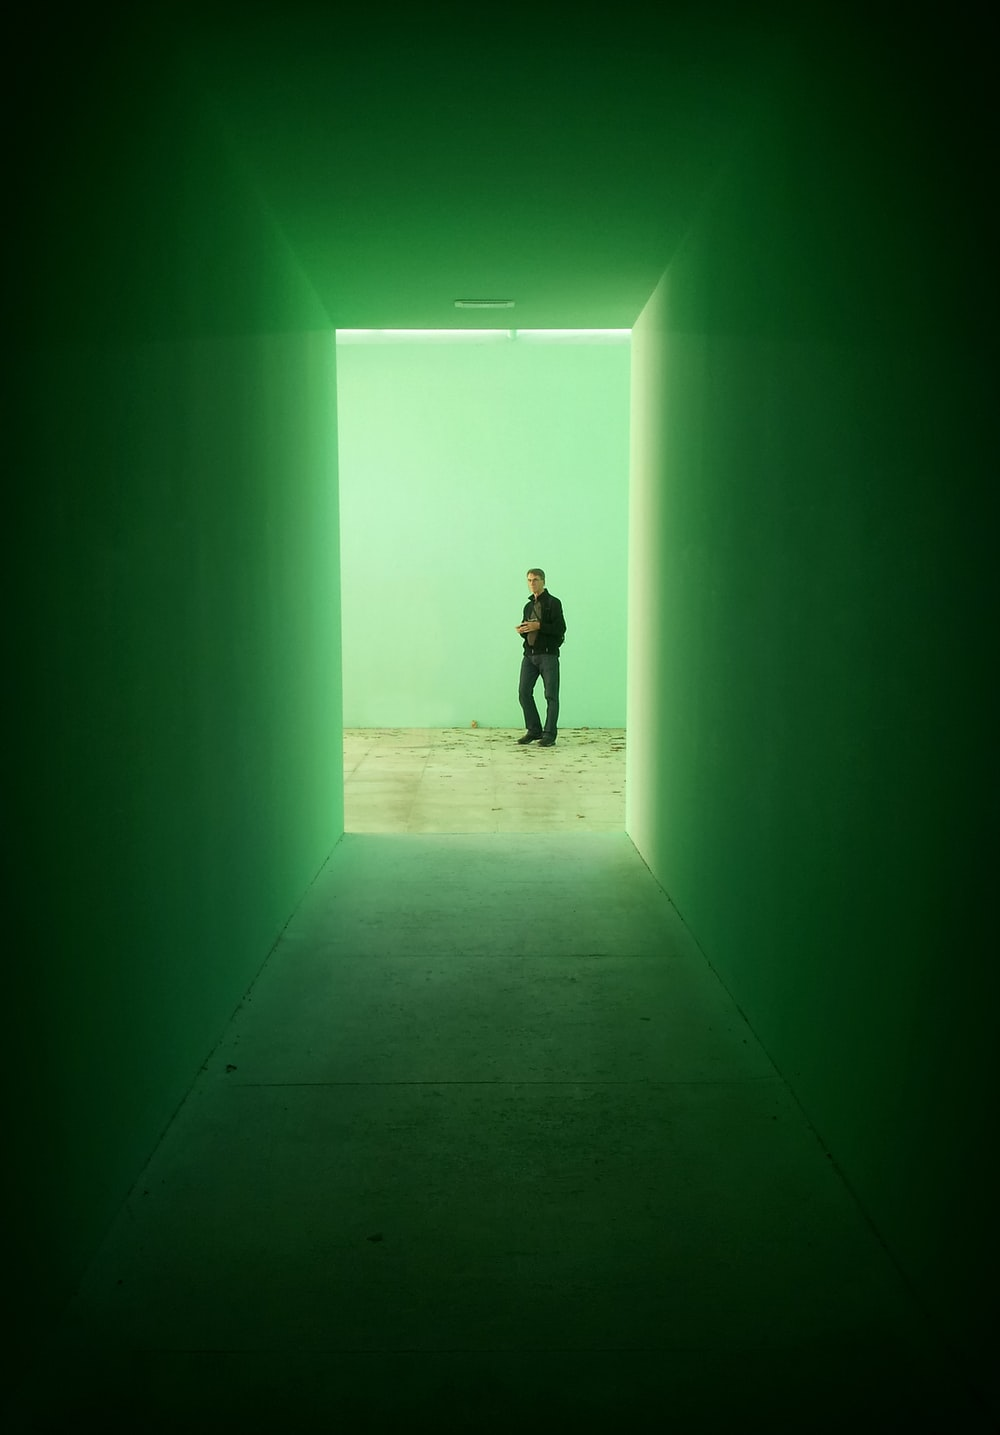 man in black jacket stands near green wall